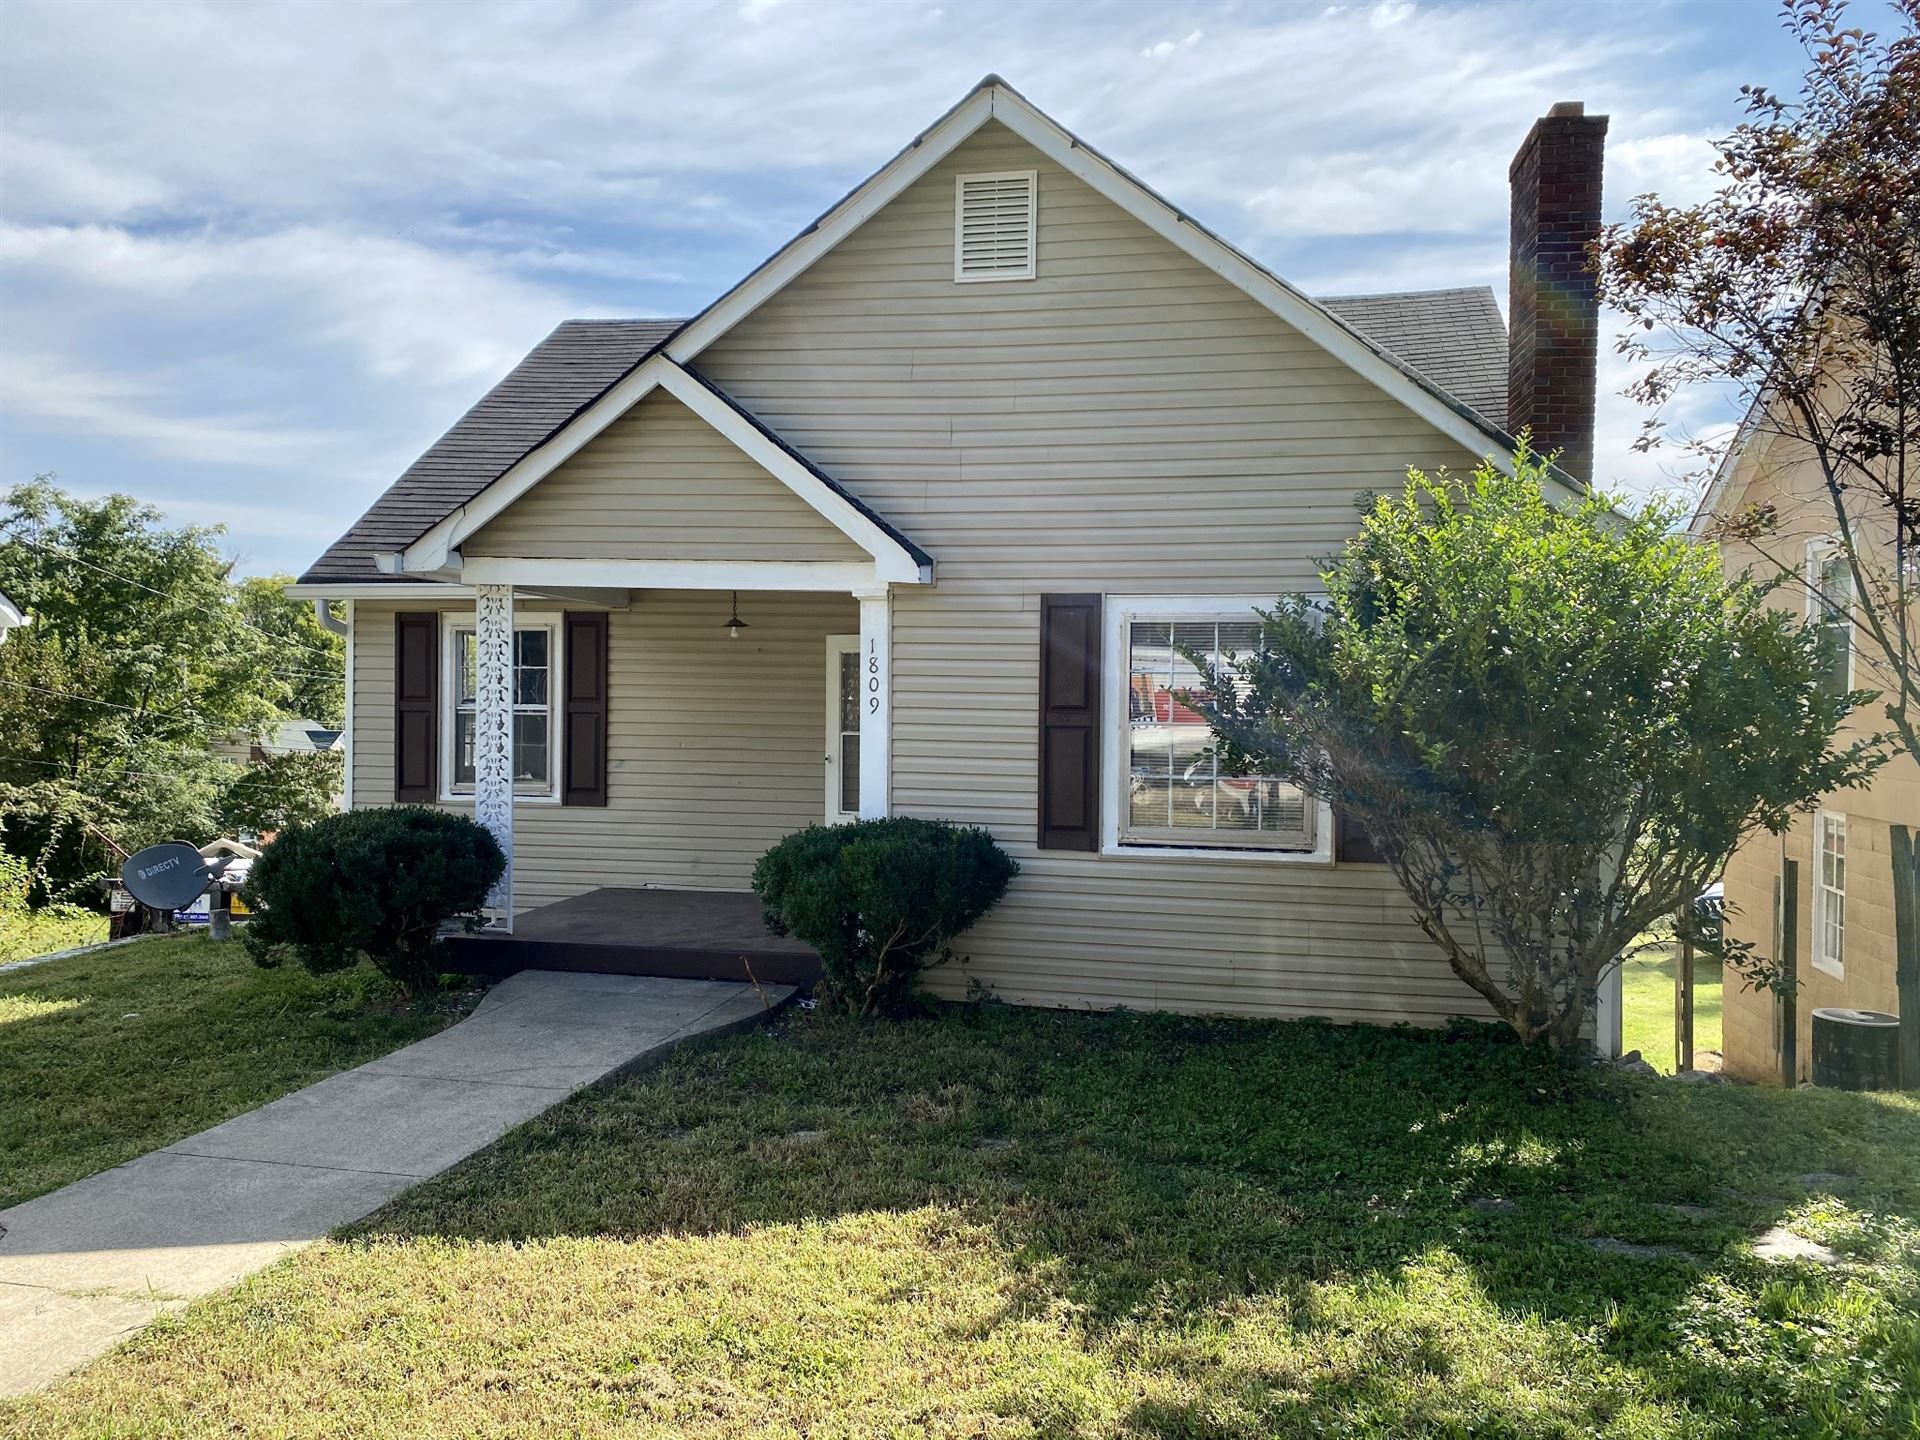 Photo of 1809 Dimple Ct, Columbia, TN 38401 (MLS # 2209711)